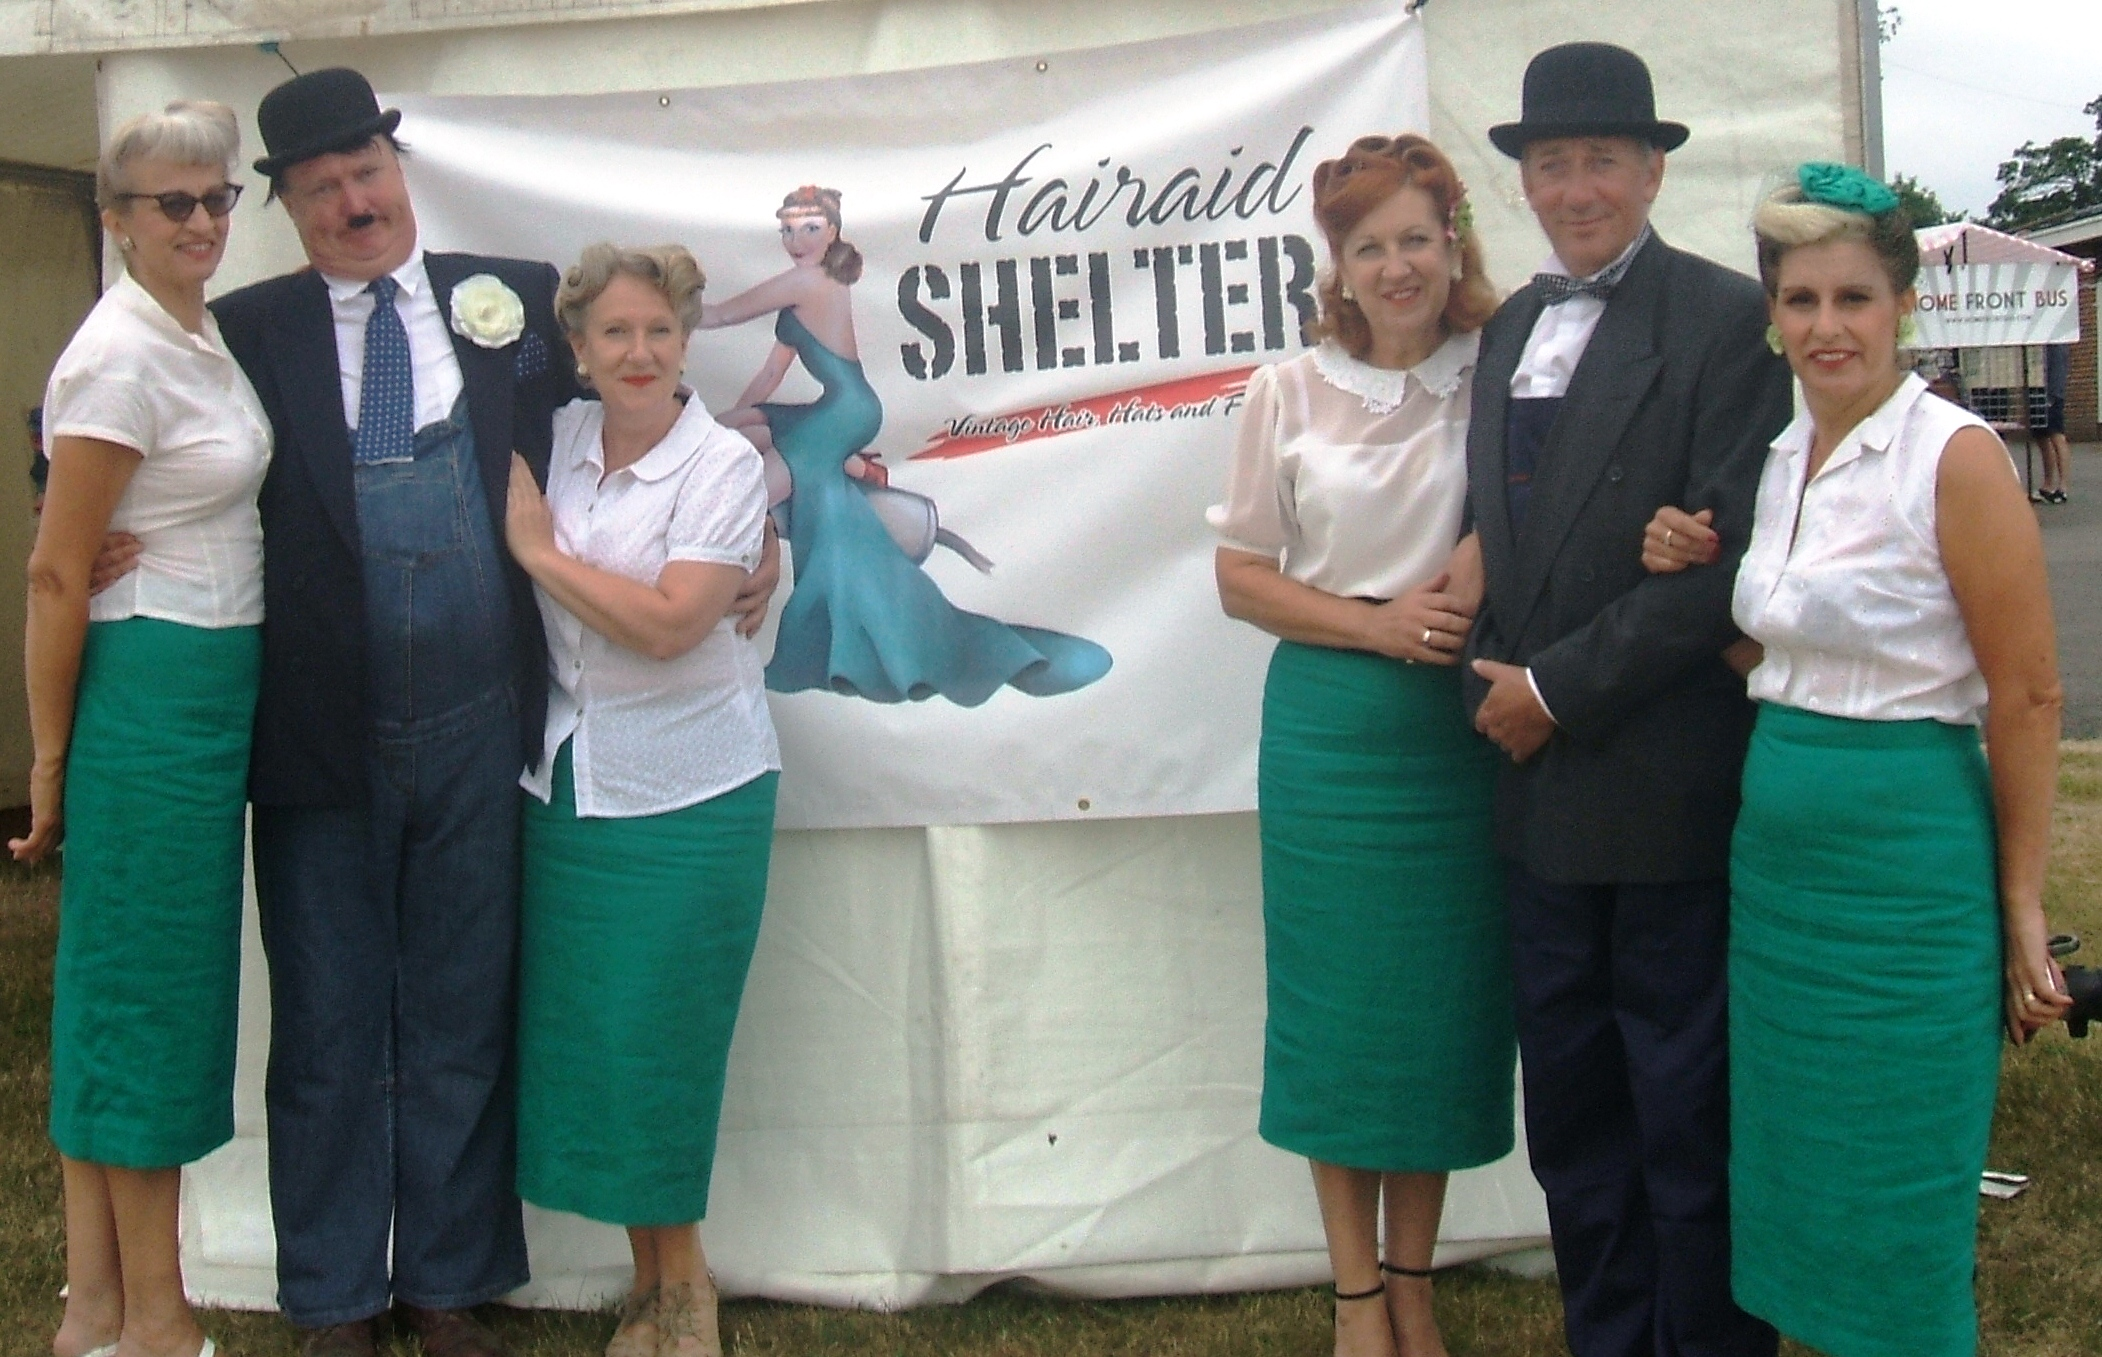 Hairaid Shelter events